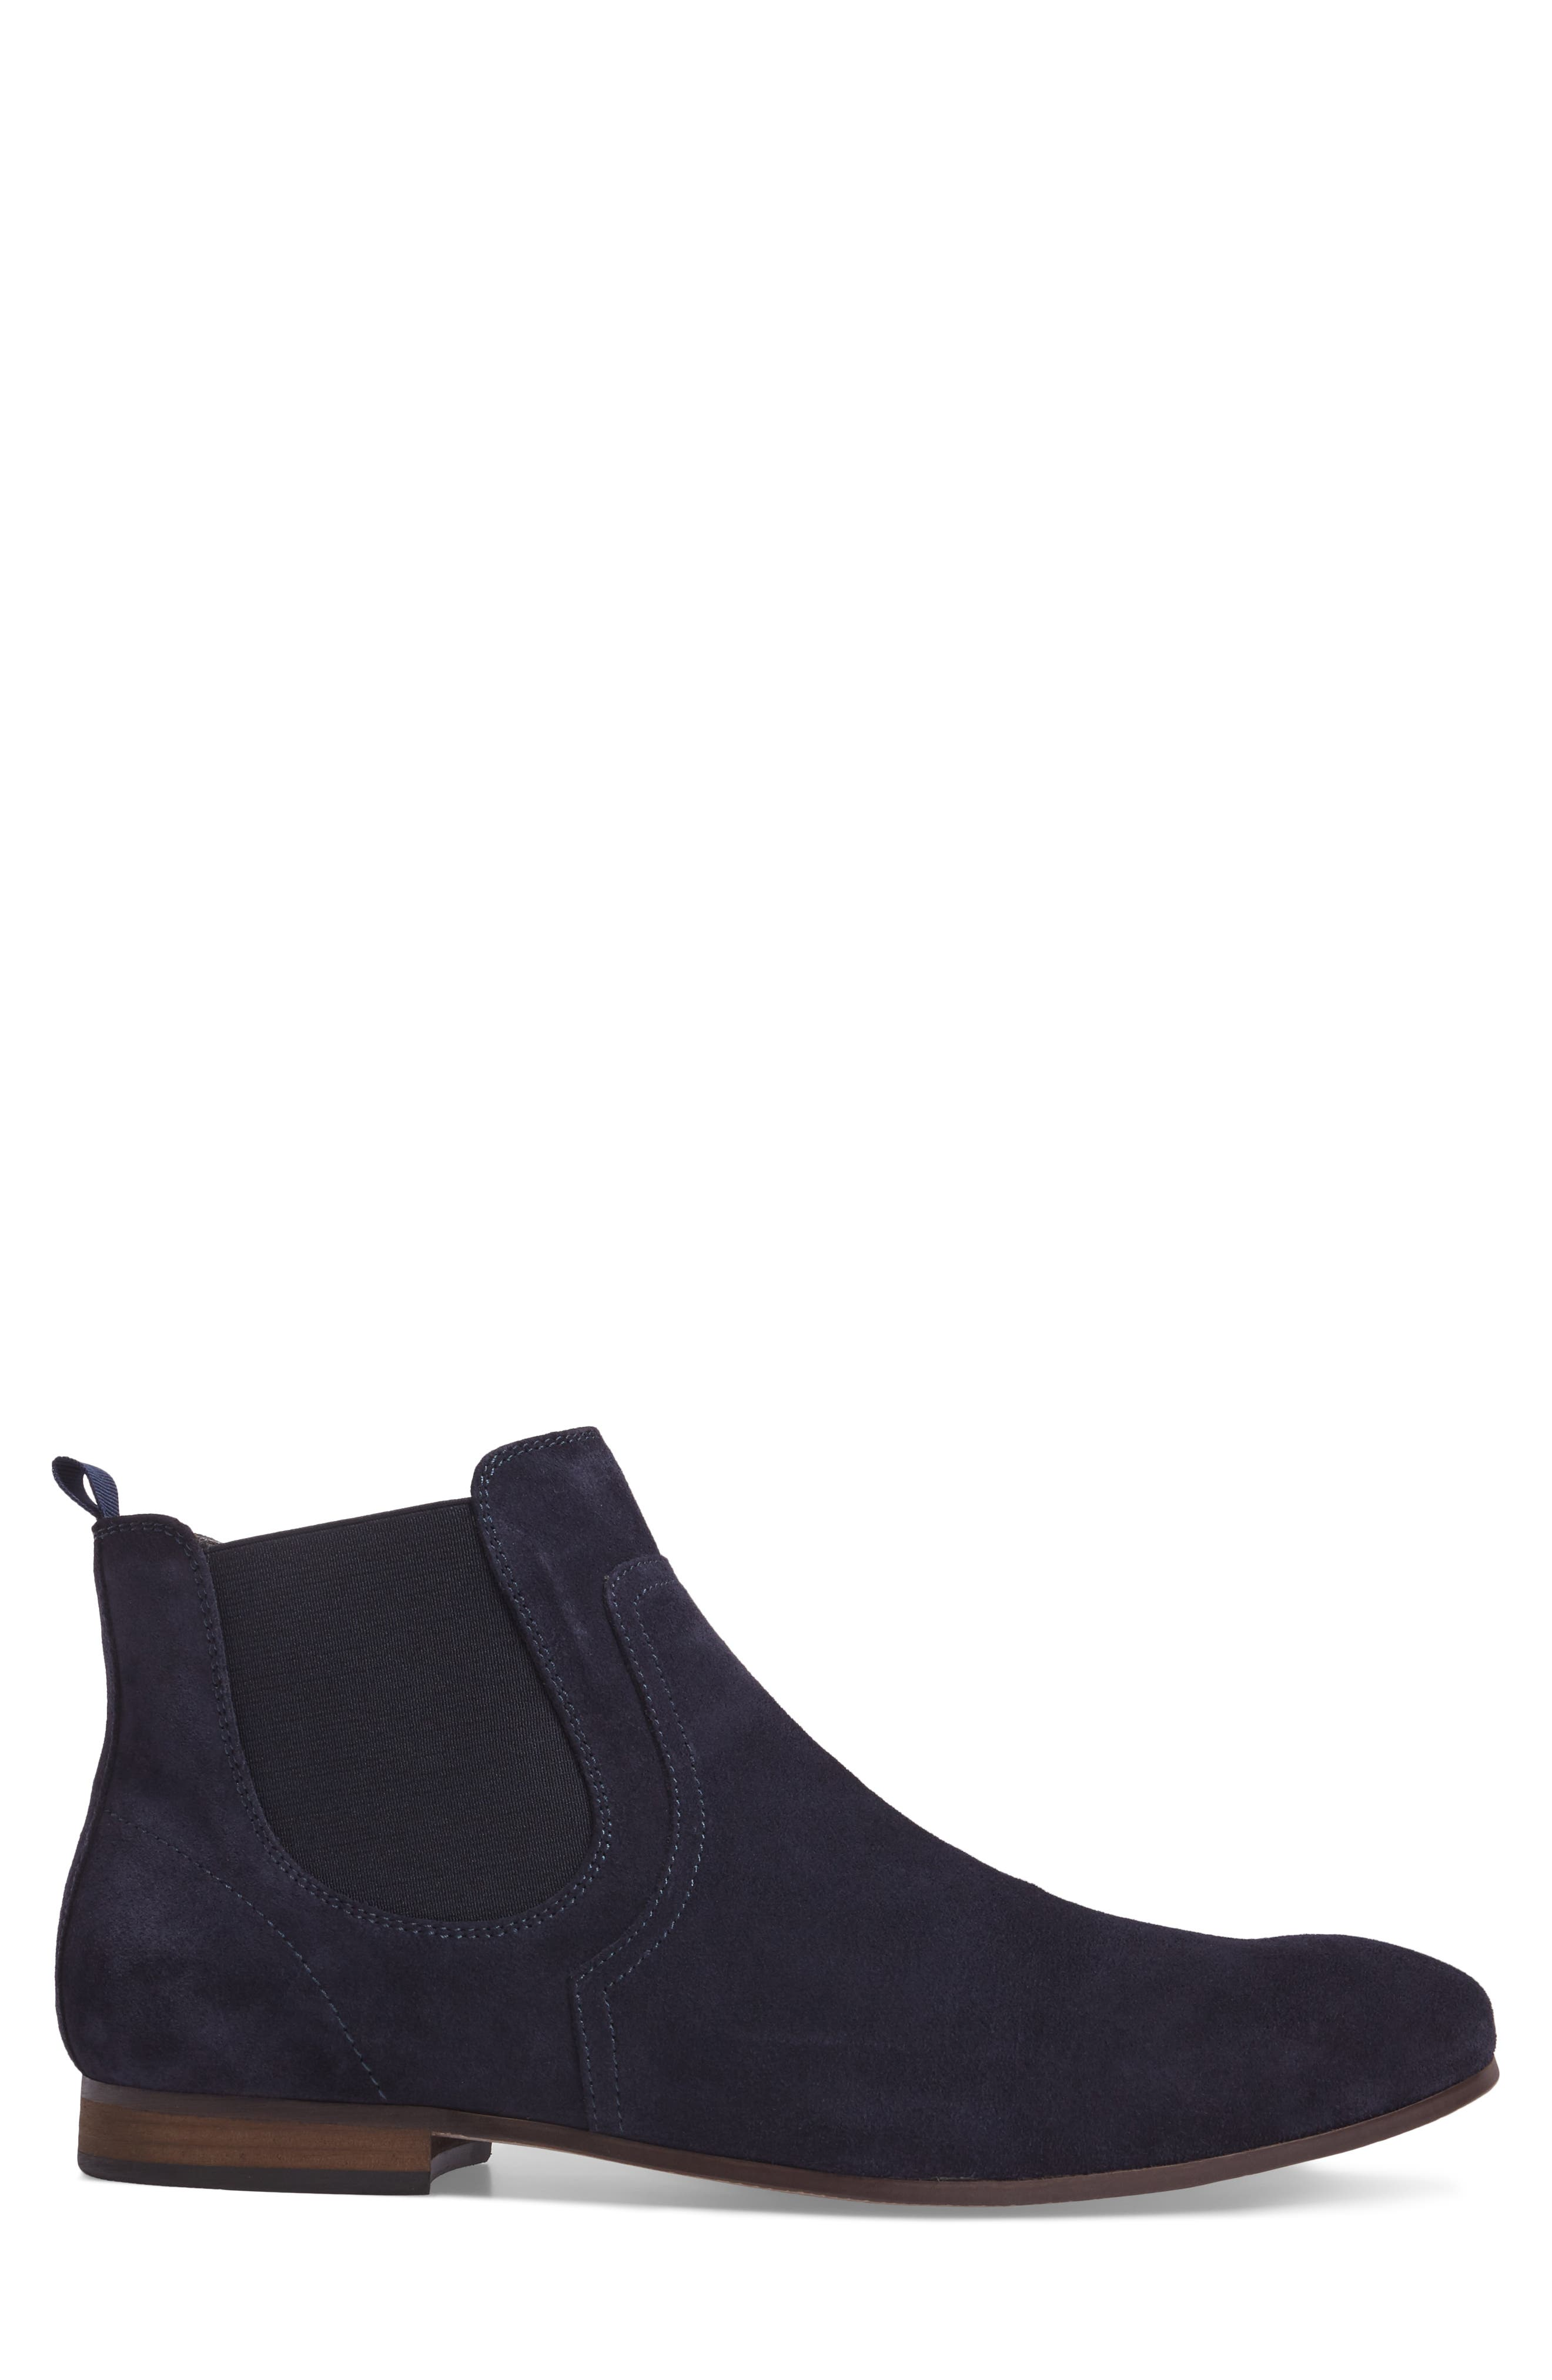 Brysen Chelsea Boot,                             Alternate thumbnail 43, color,